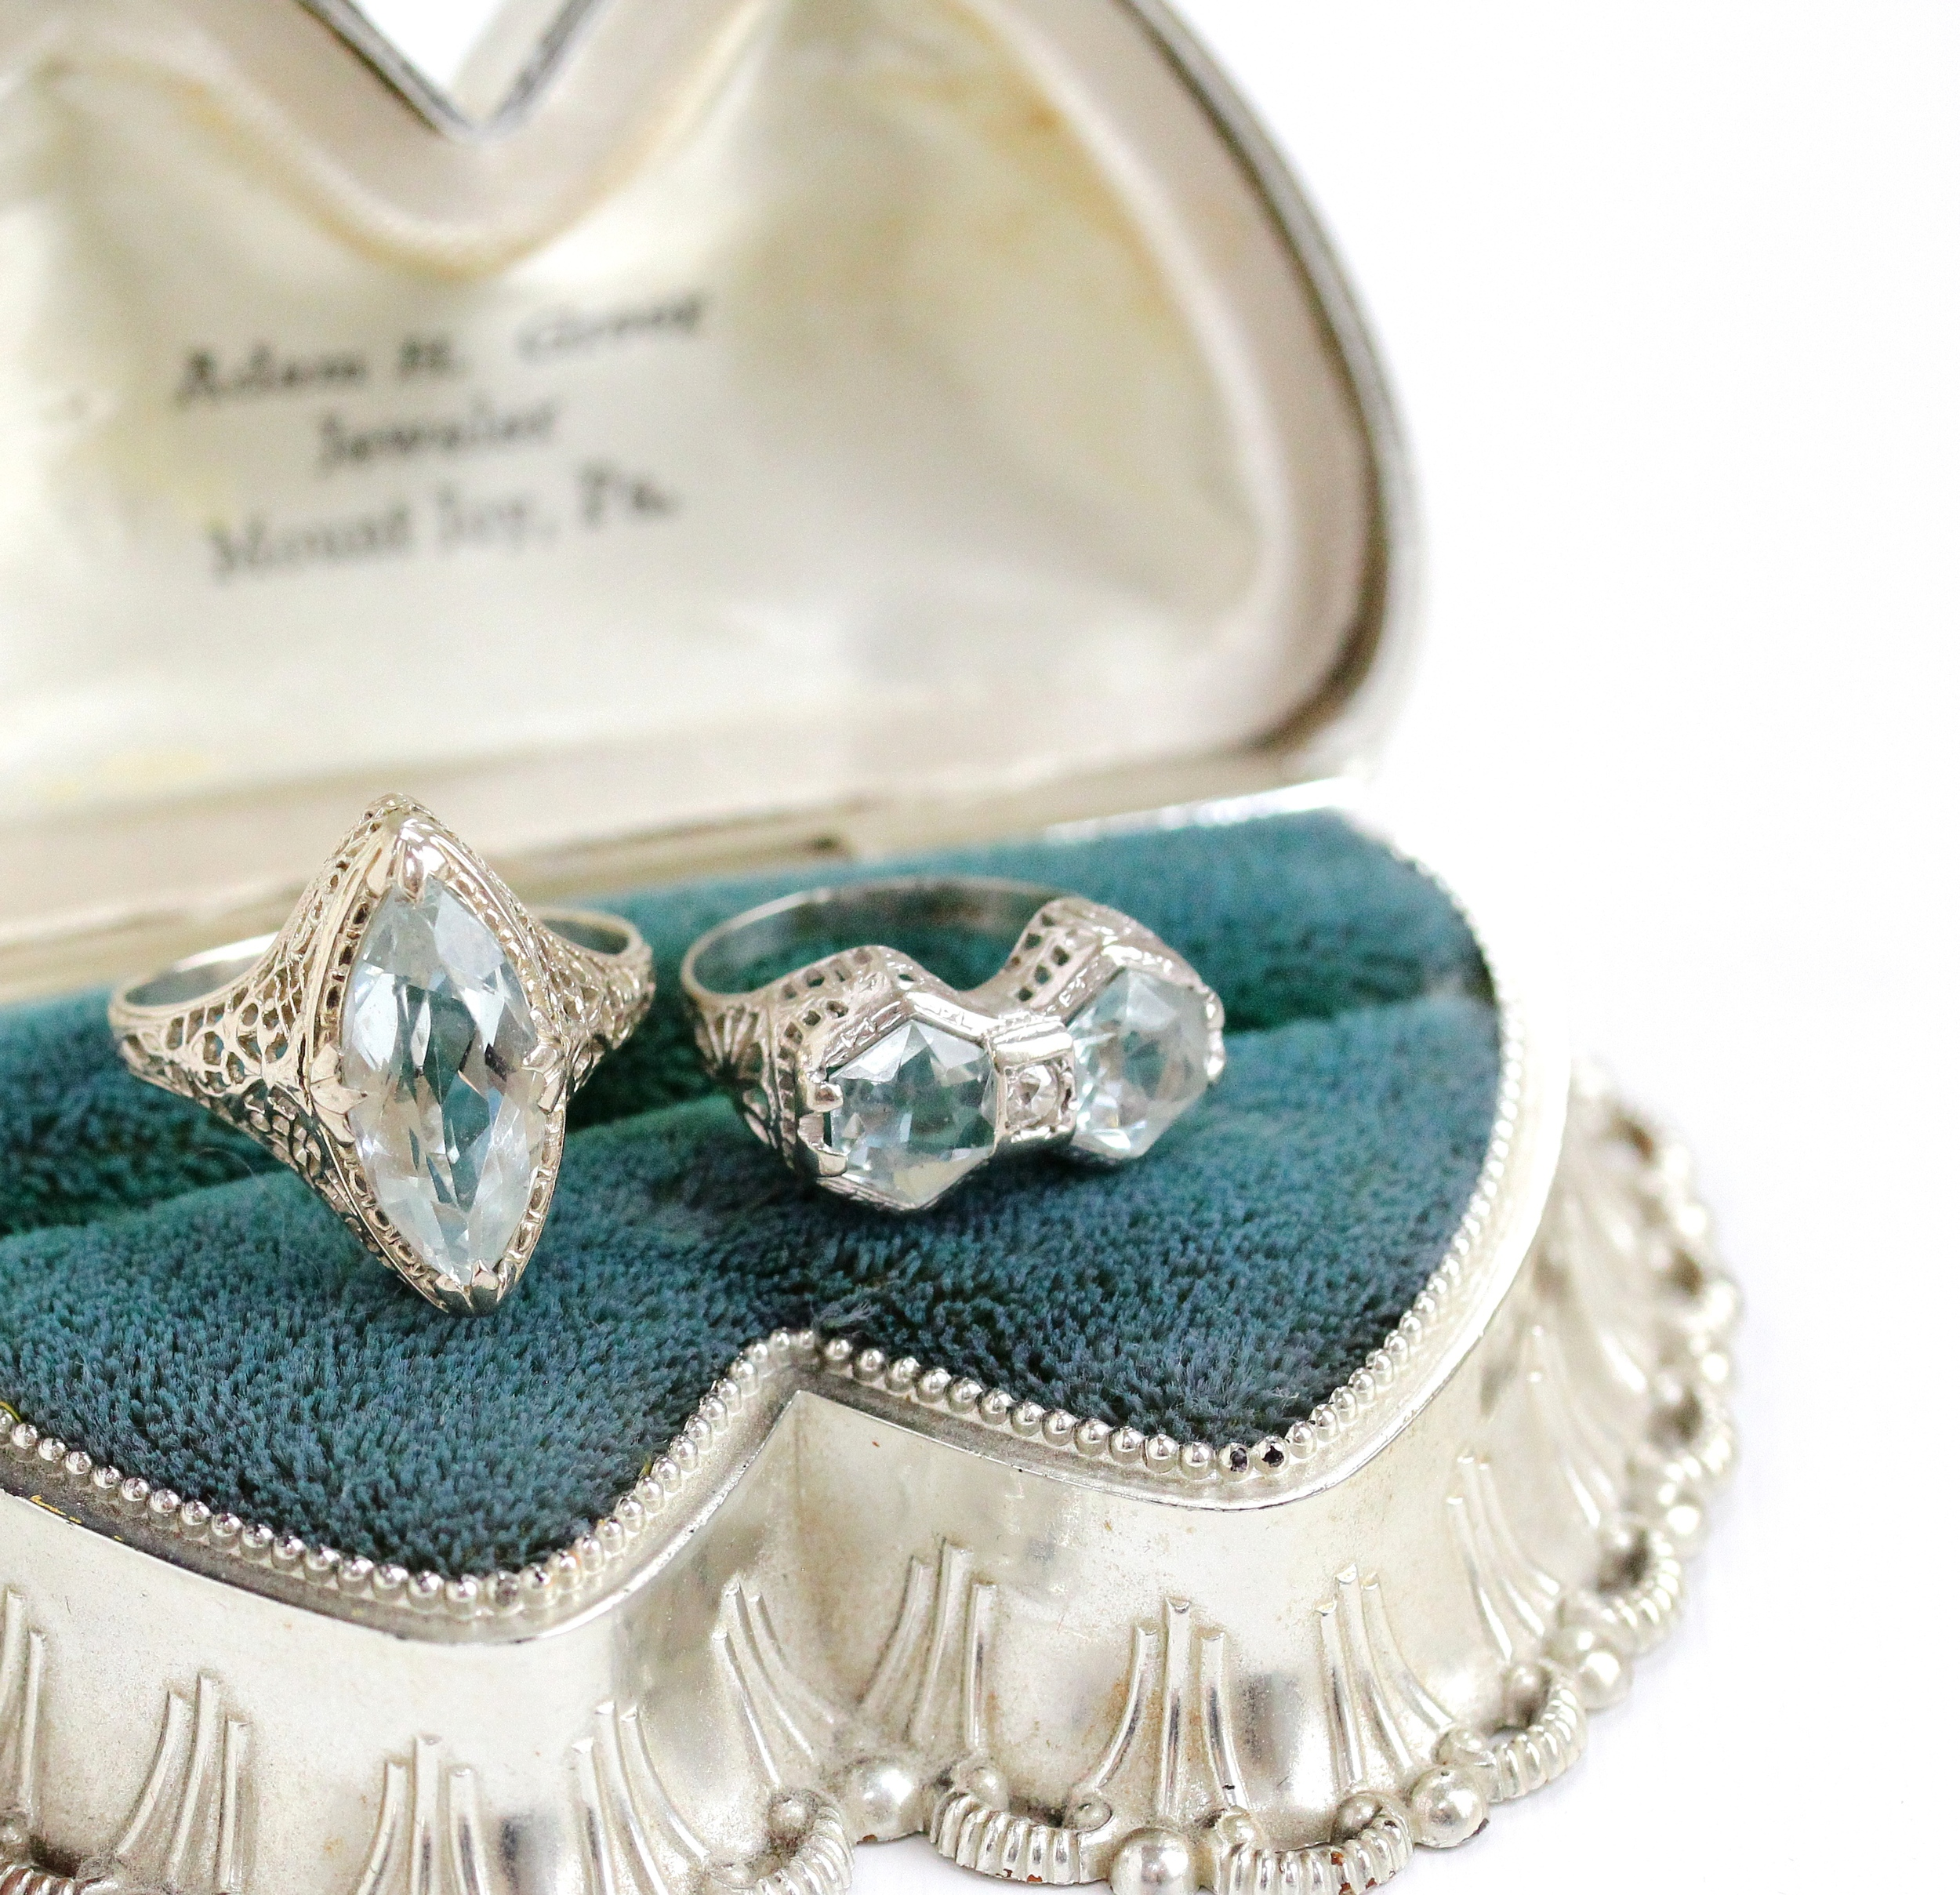 Of course we couldn't leave the show with out picking up a few filigree aquamarine rings!